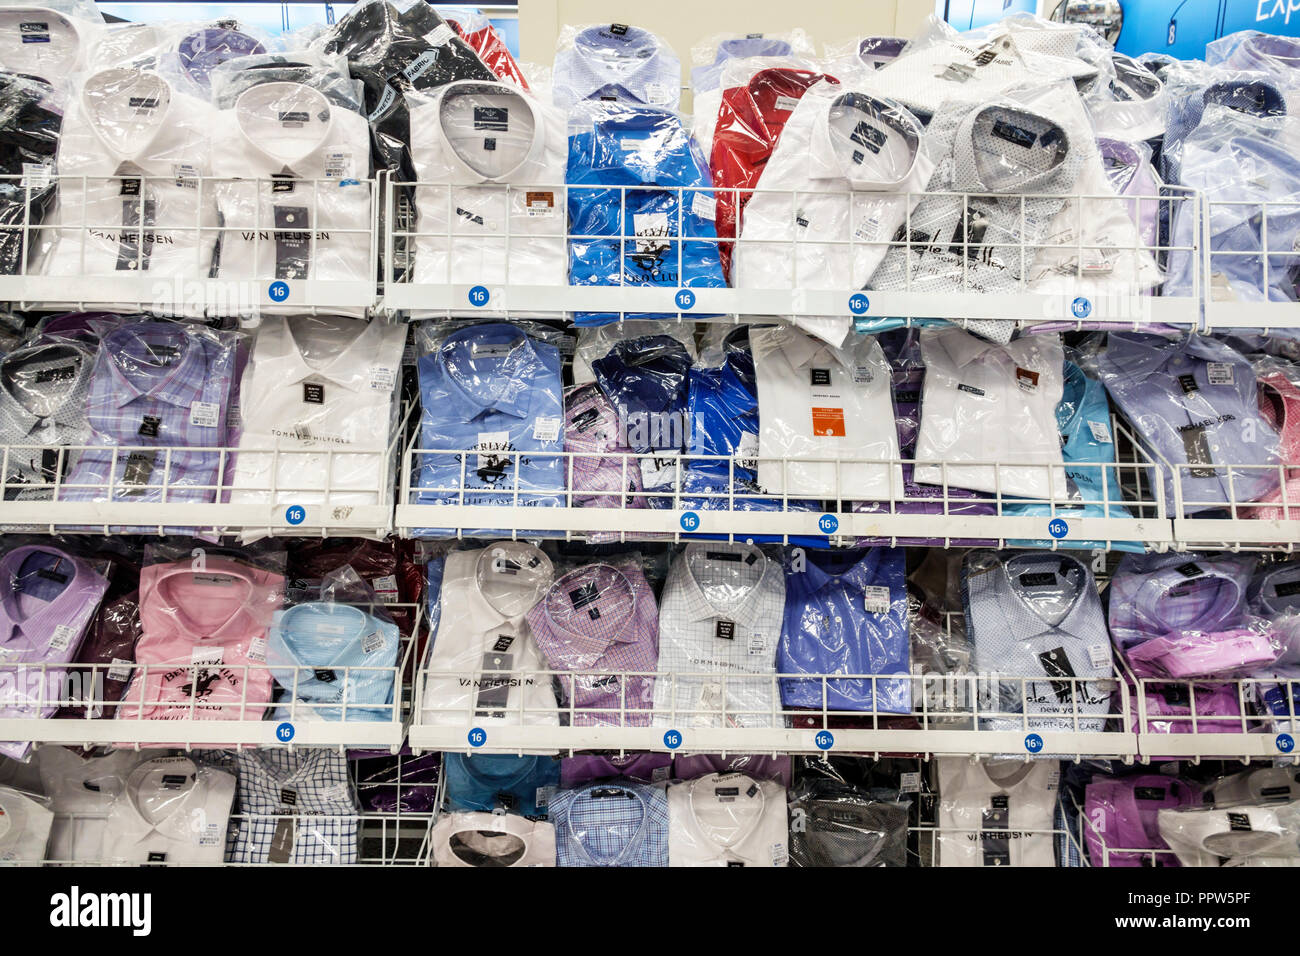 Miami Beach Florida Ross Department Store shopping inside display sale men's dress shirts wrapped - Stock Image